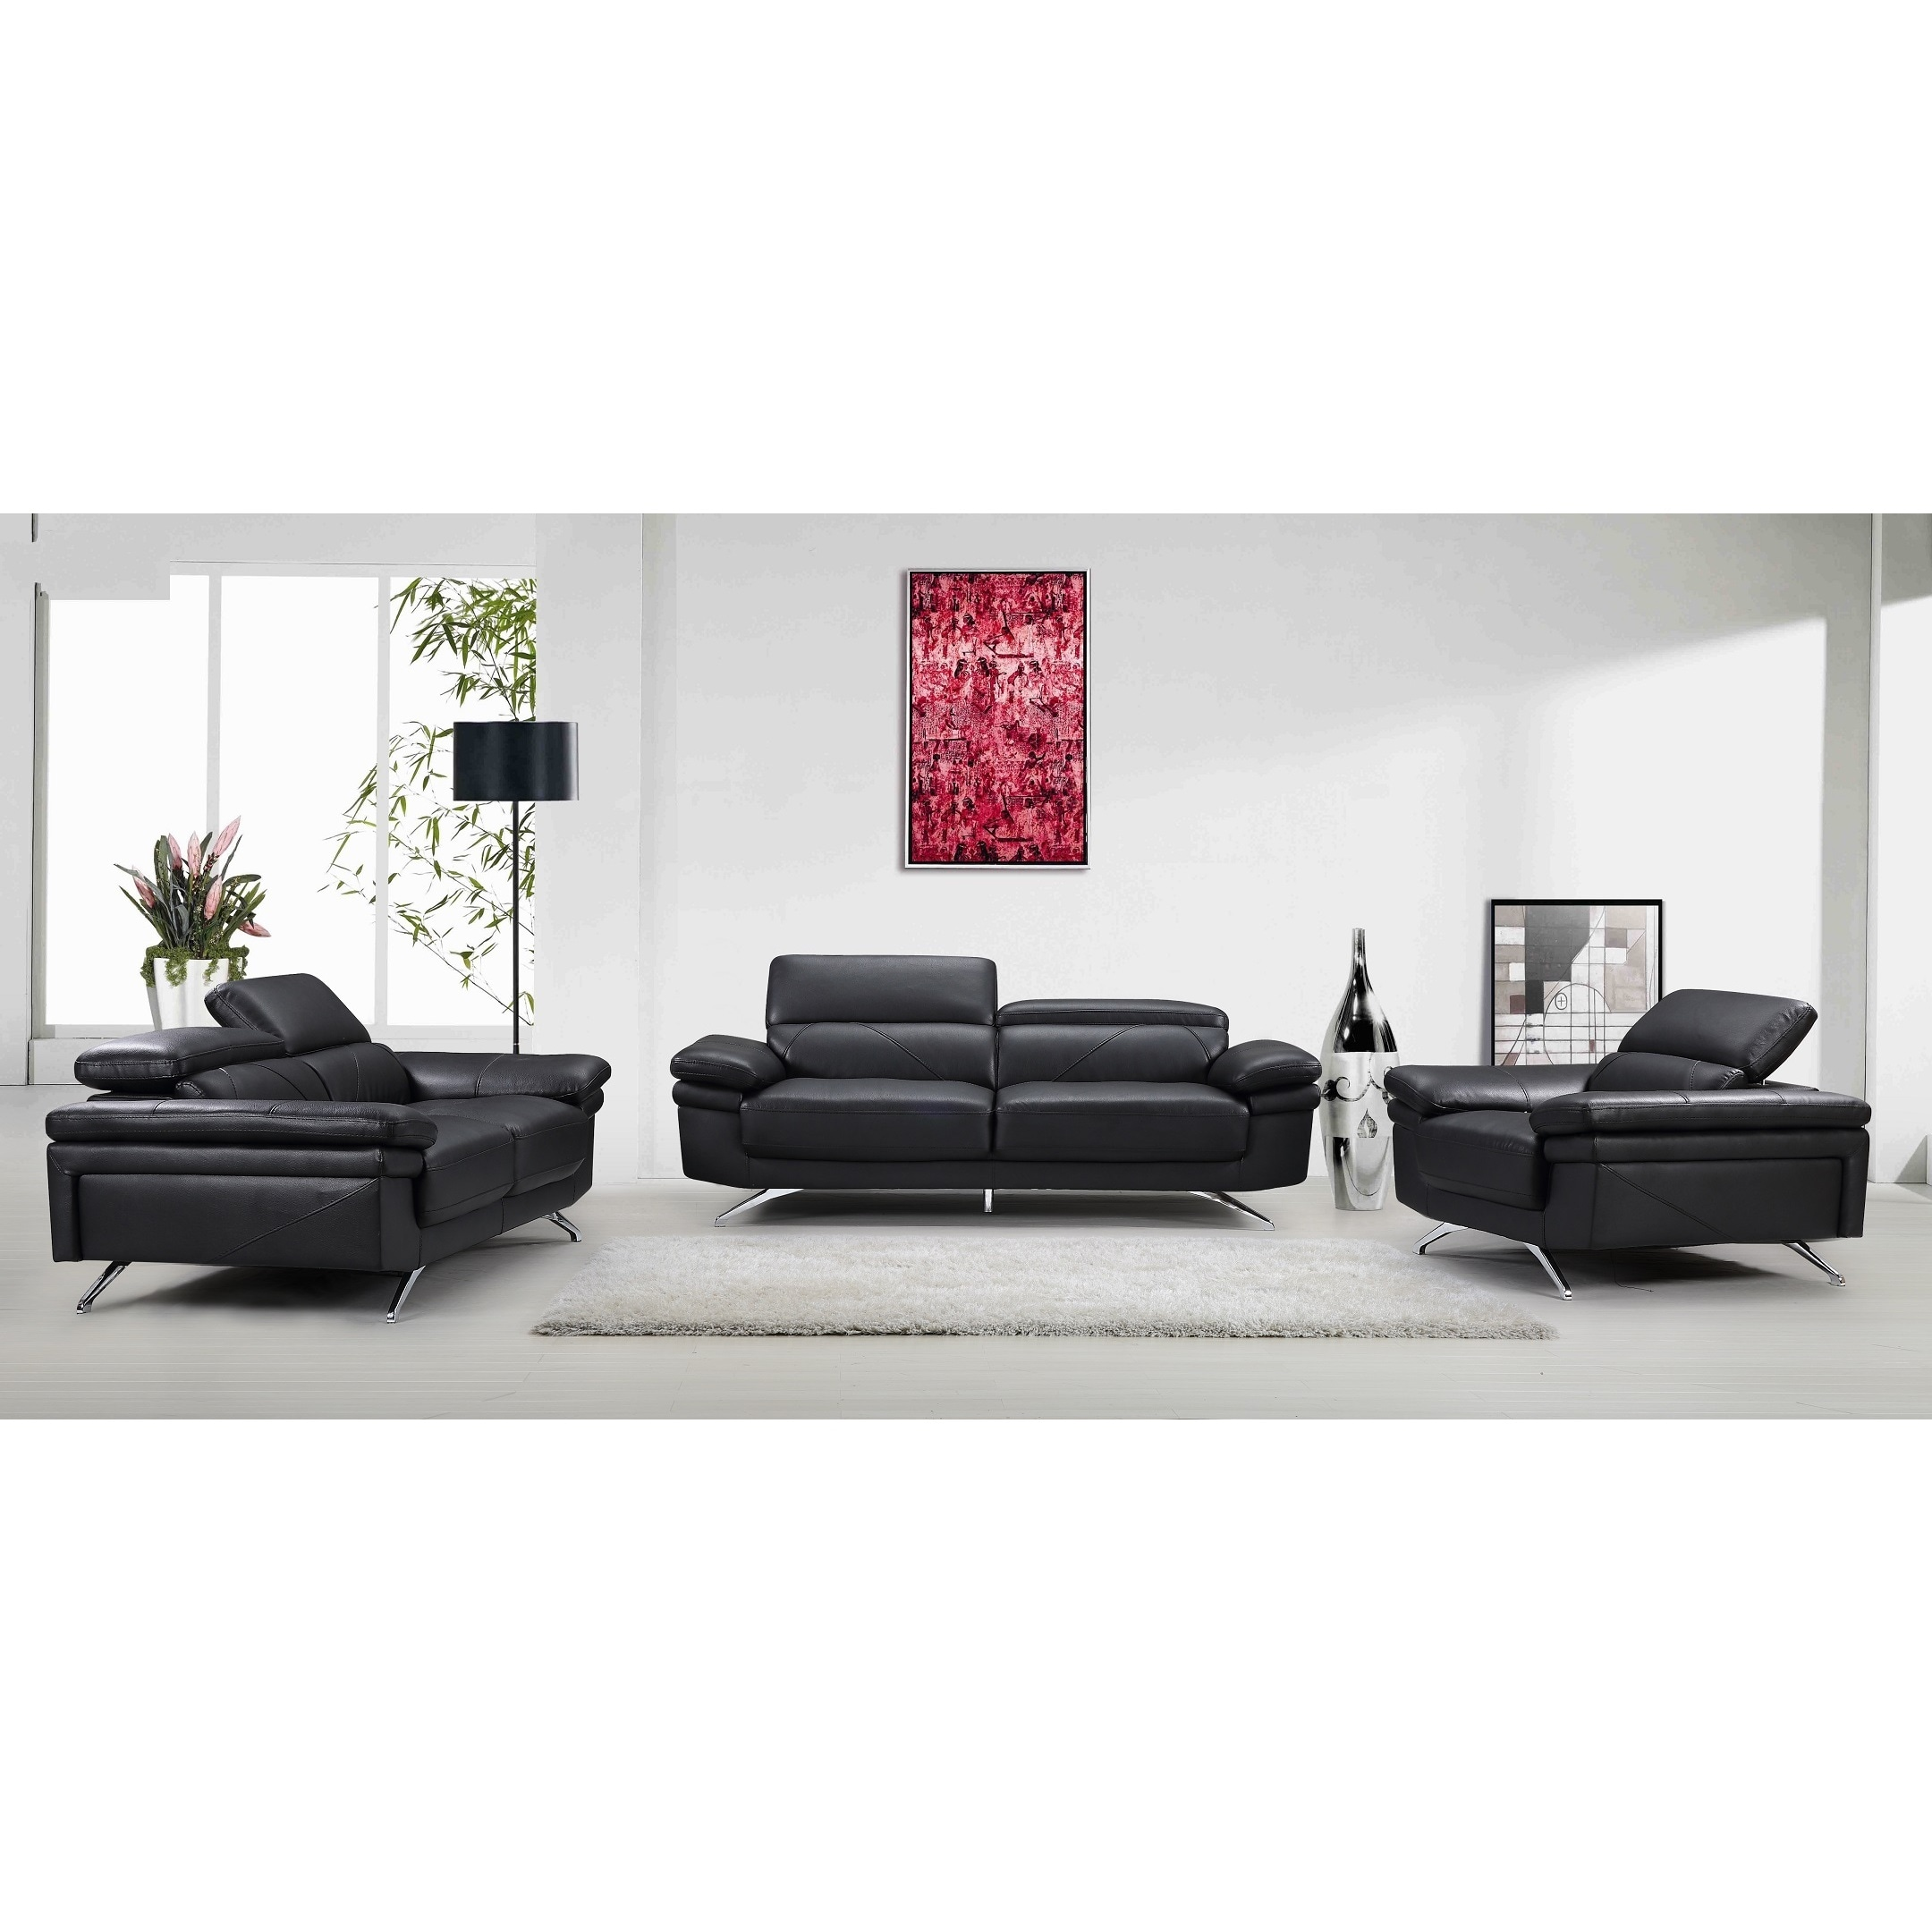 Madison Black Fabric/Faux-leather/Wood Sofa, Loveseat and Chair (3-piece  Set)